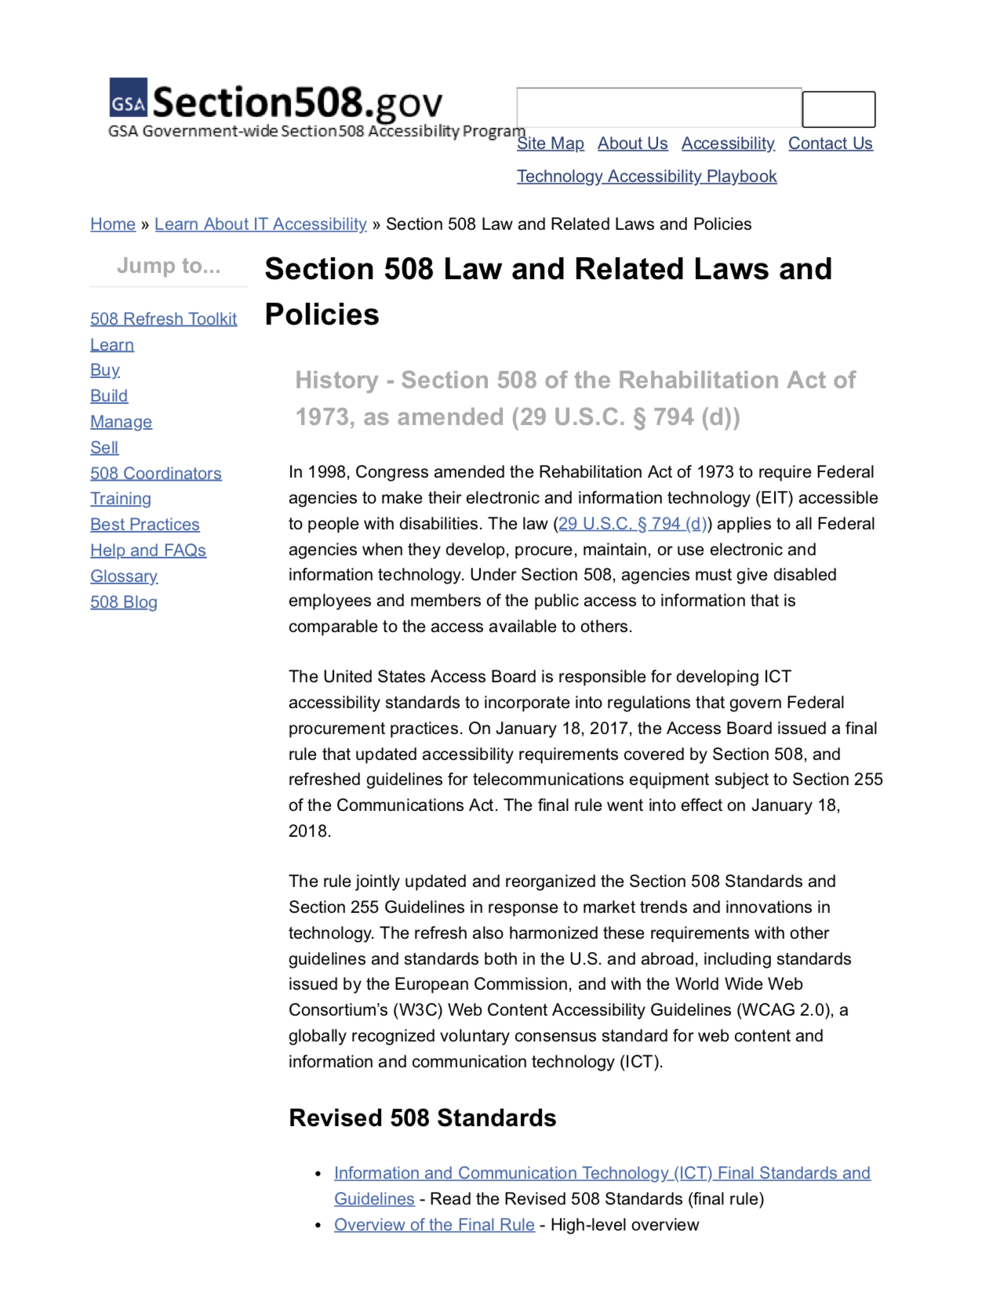 Section 508 Law and Related Laws and Policies | Section508.gov.png